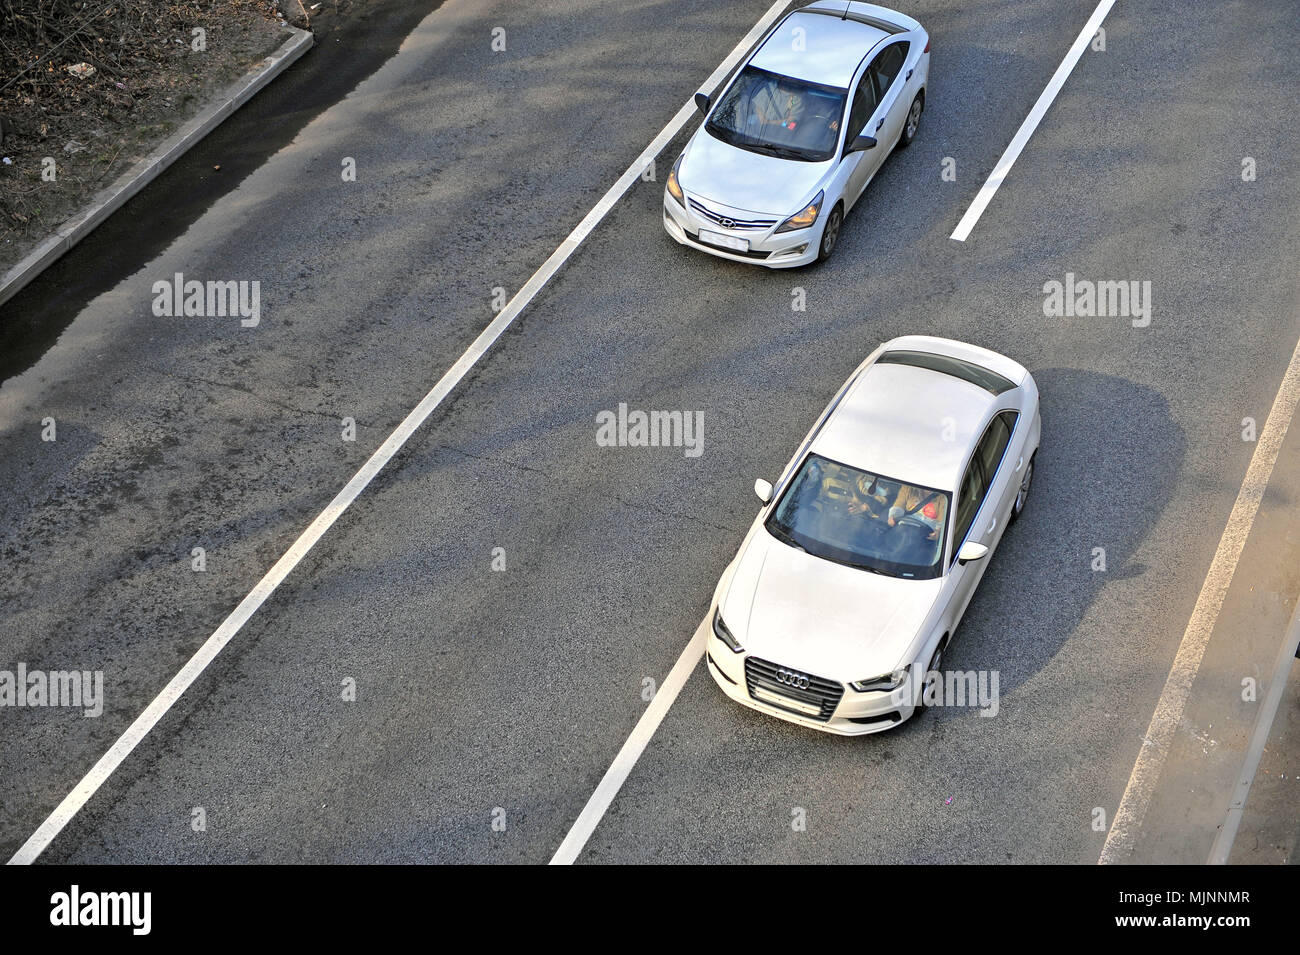 MOSCOW, RUSSIA - APRIL 30: Top view of two cars on highway